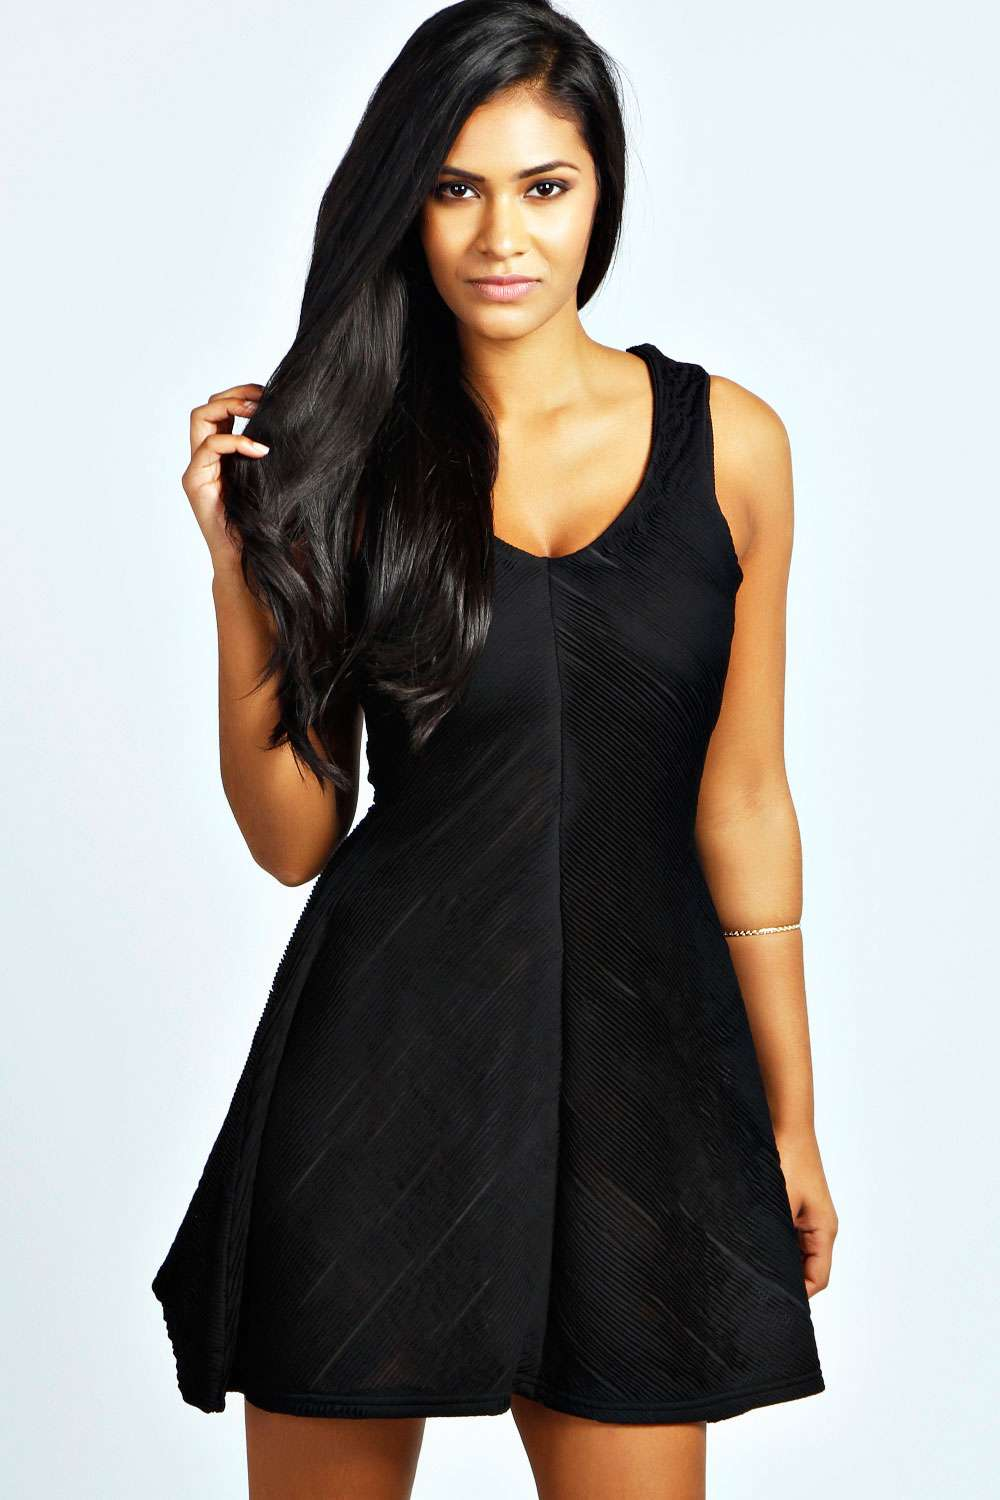 boohoo Laura Textured Skater Dress - black product image